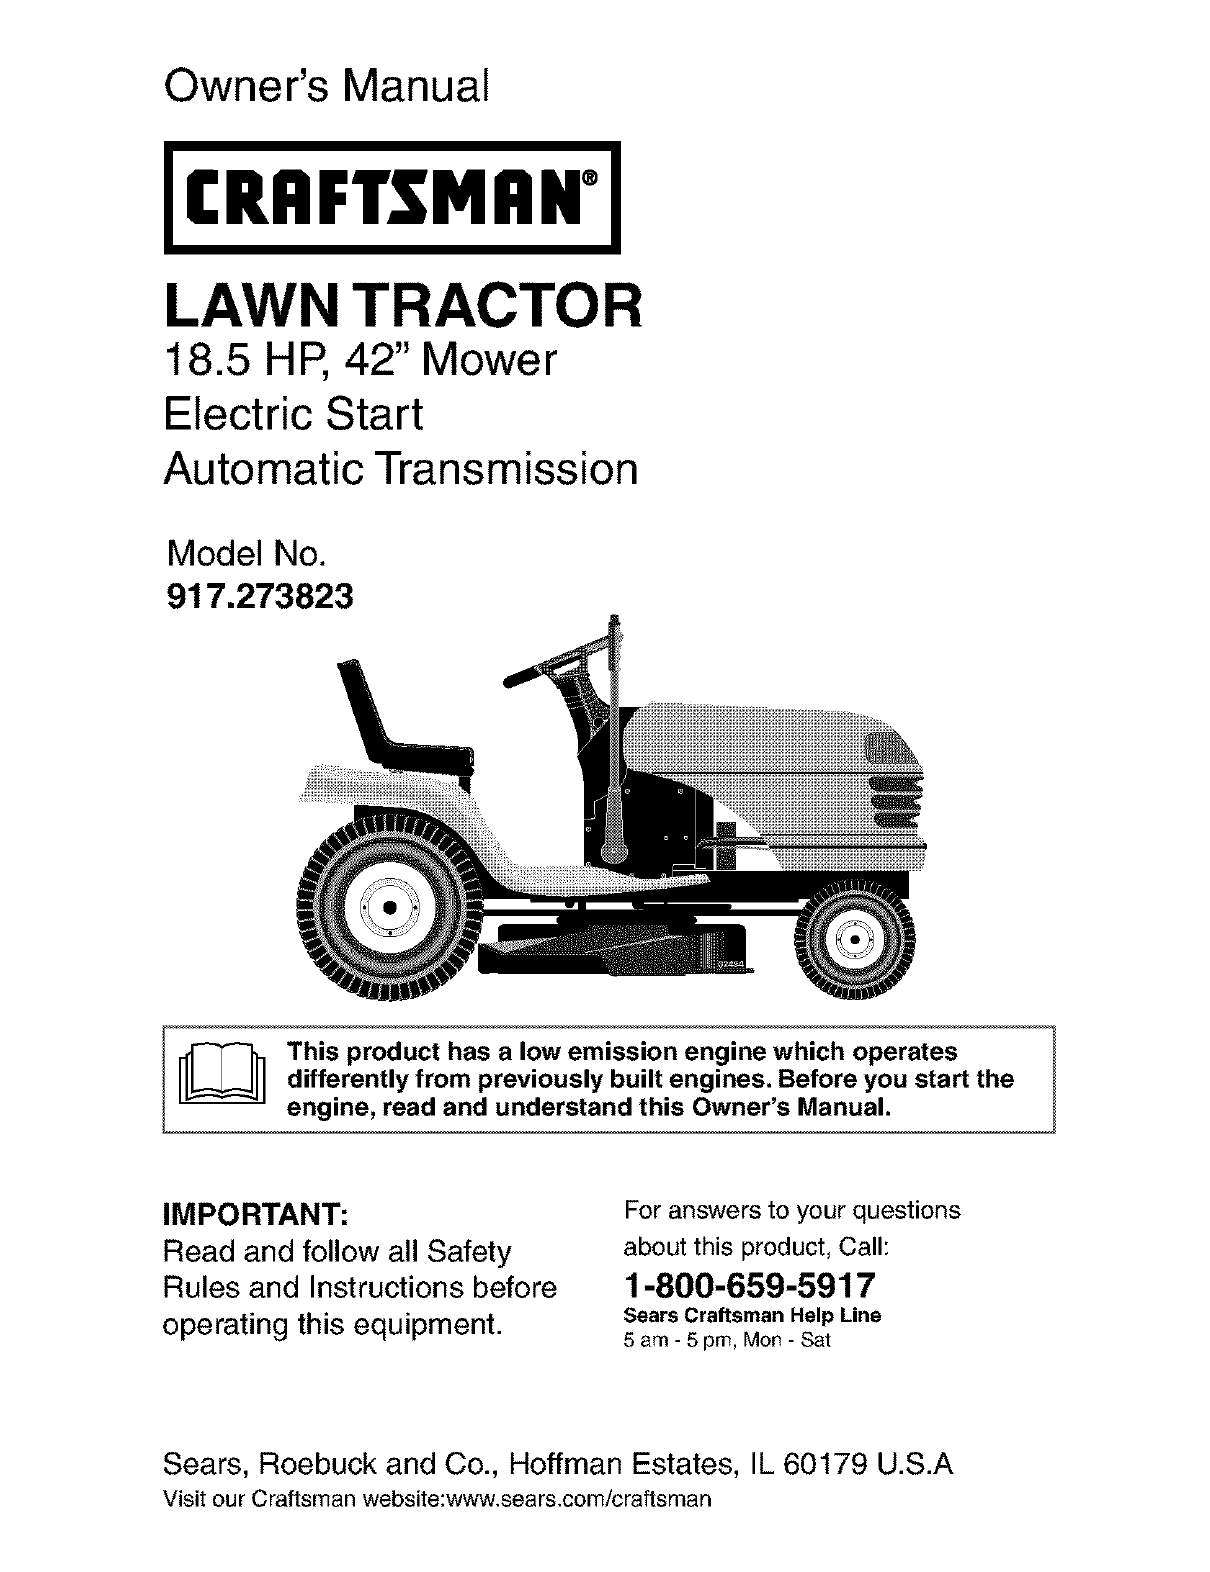 craftsman lawn mower 917 273823 user guide manualsonline com rh phone manualsonline com Craftsman GT6000 Garden Tractor Manual Sears Craftsman Garden Tractor Manual